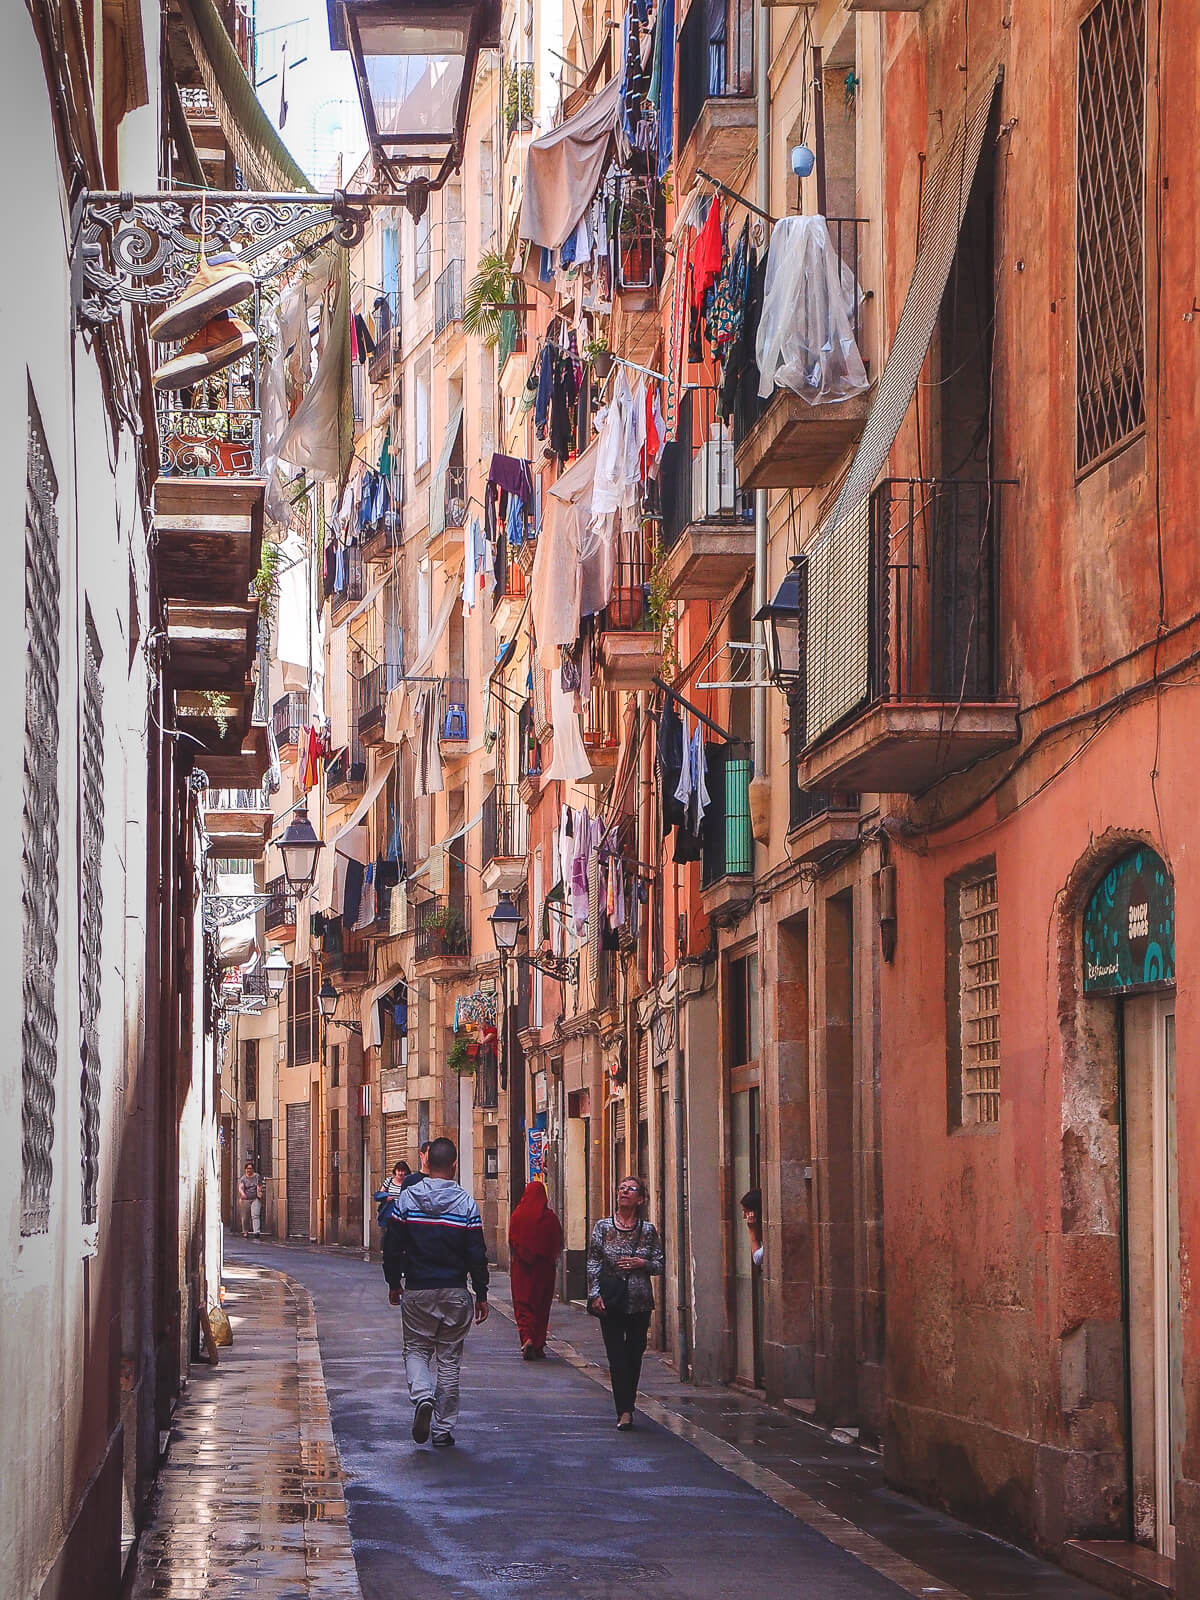 Barcelona Street Photography, cloths dry outside, narrow alley streets, old town, pedestriants walking, streetlife